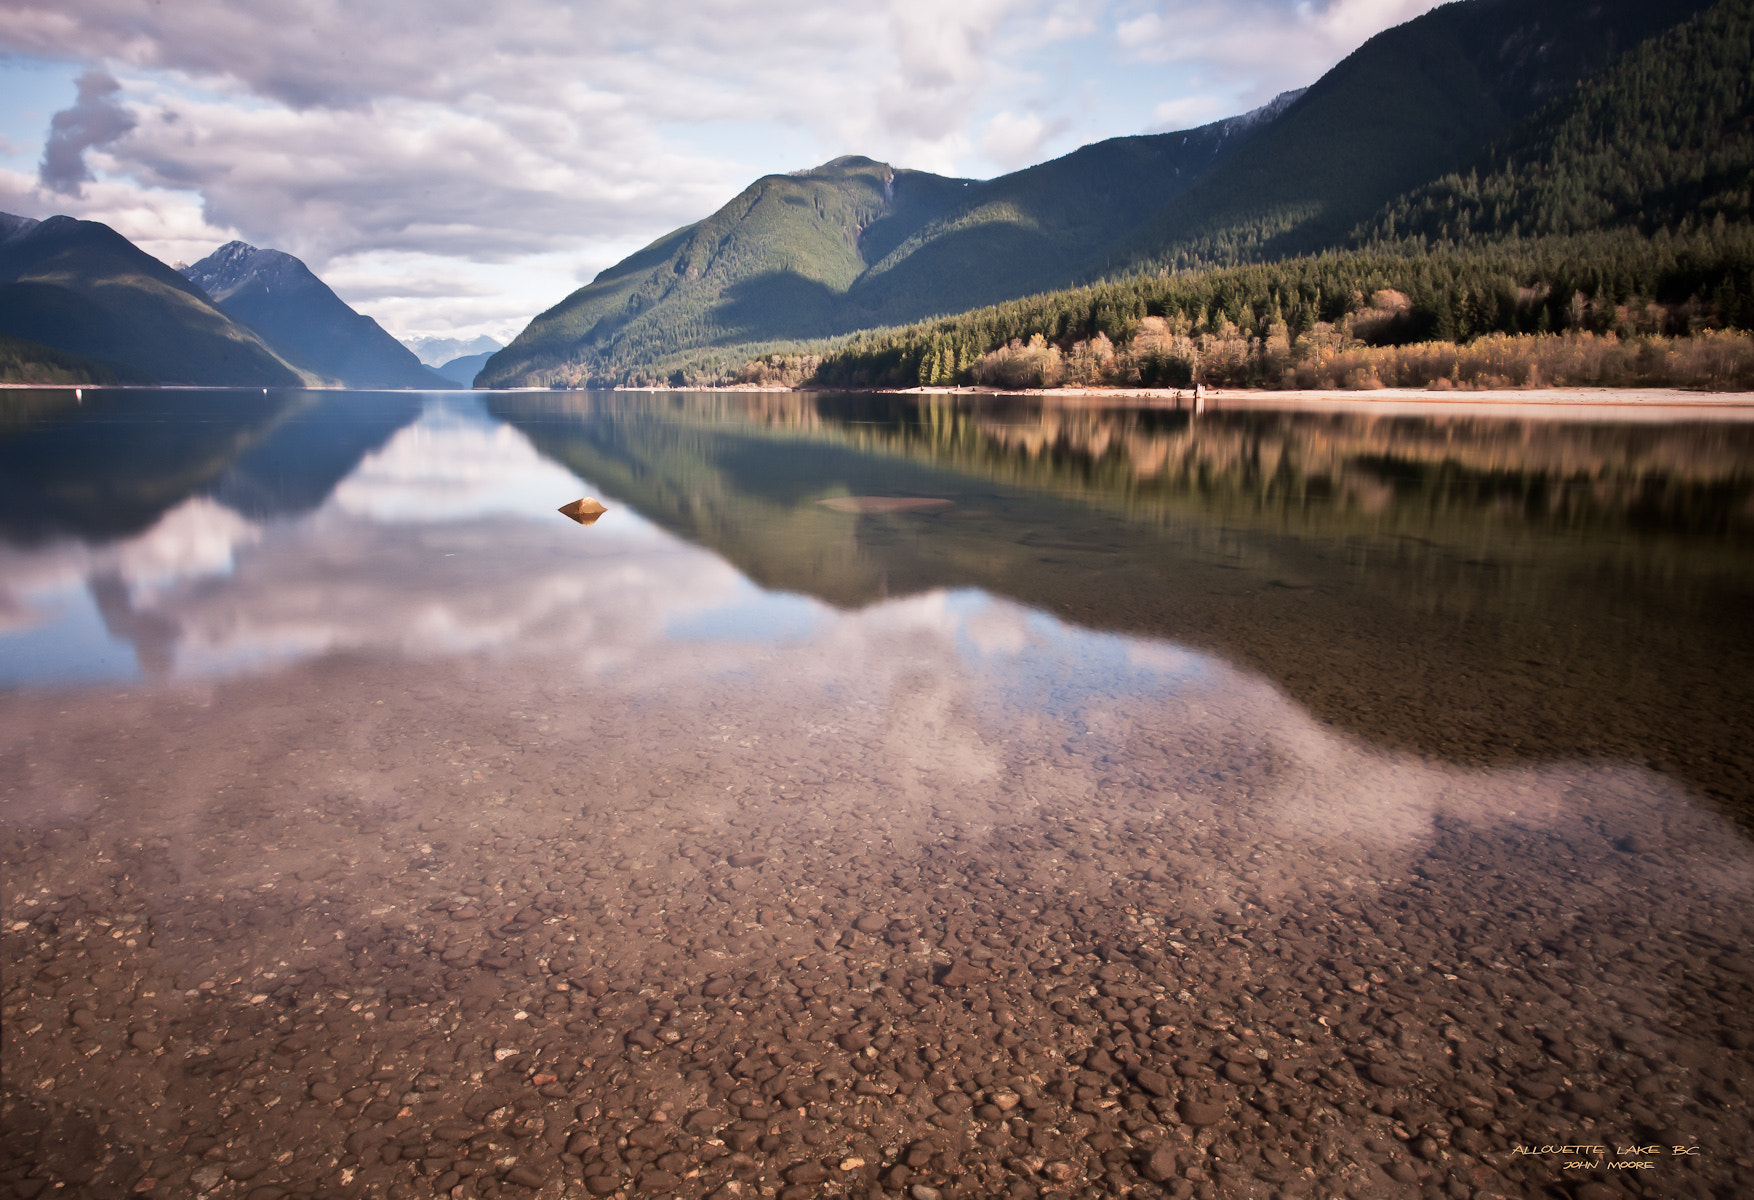 Photograph Allouette Lake BC by John Moore on 500px